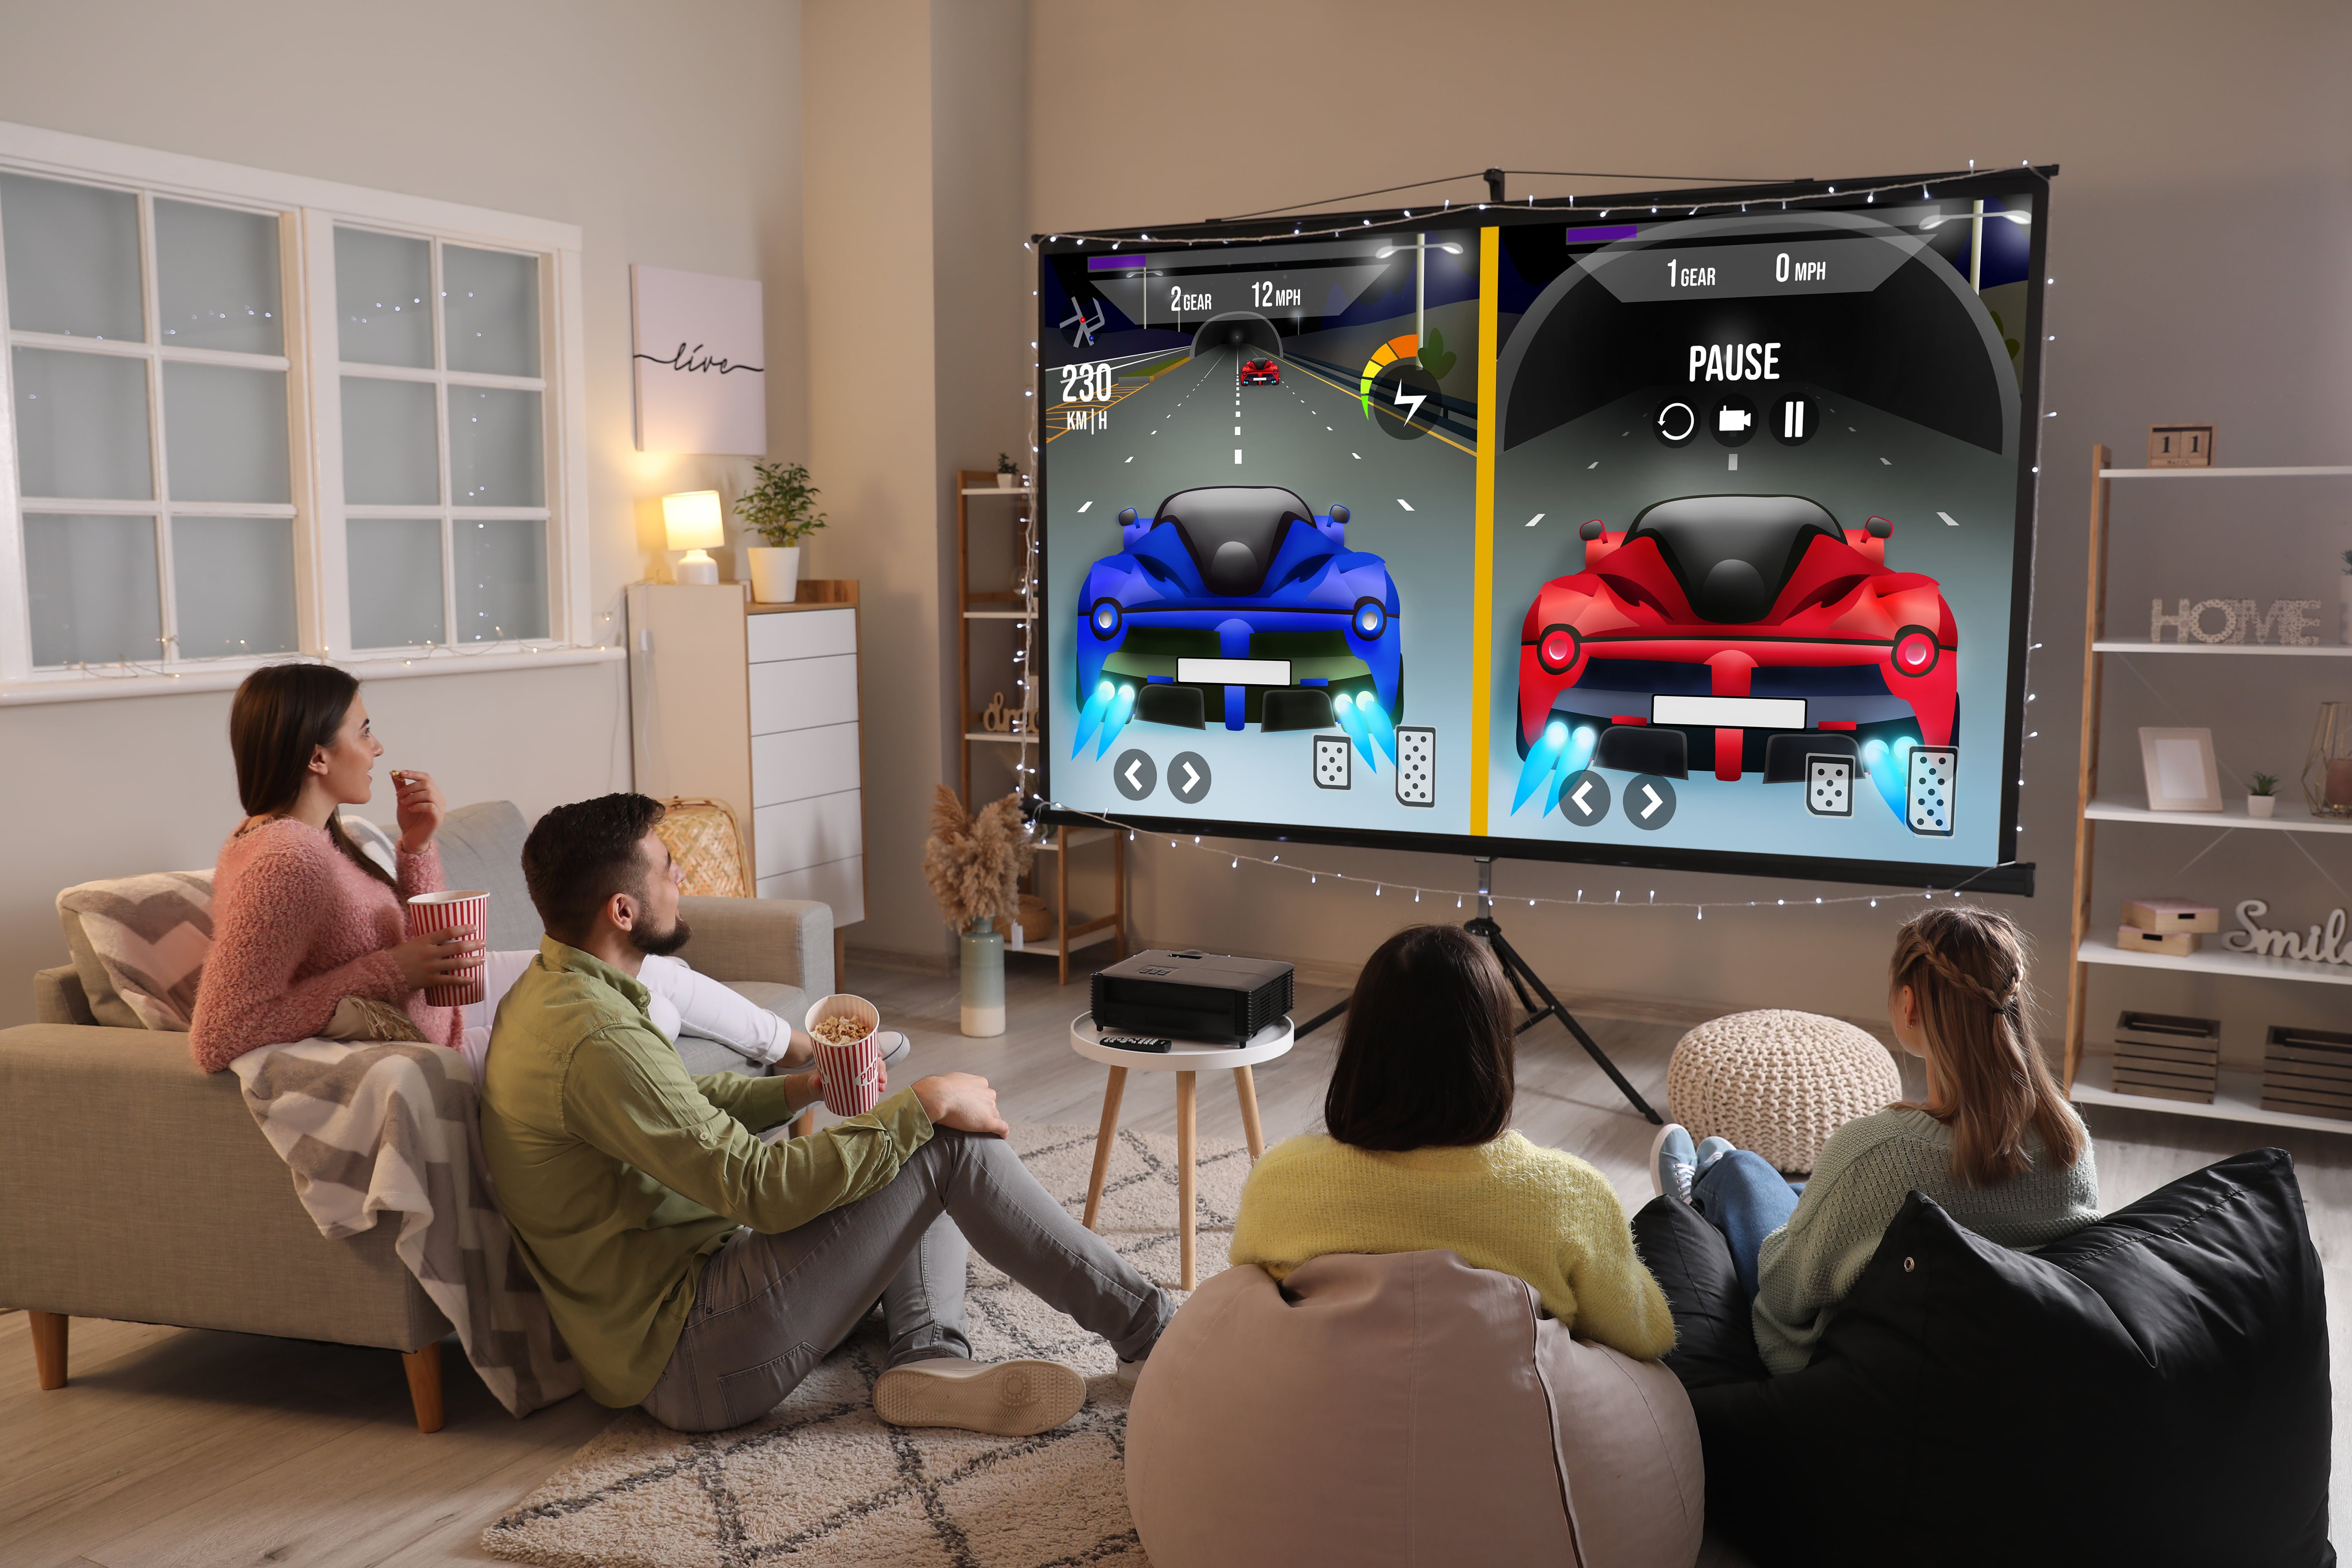 4 Gamers playing and a gaming projector at home